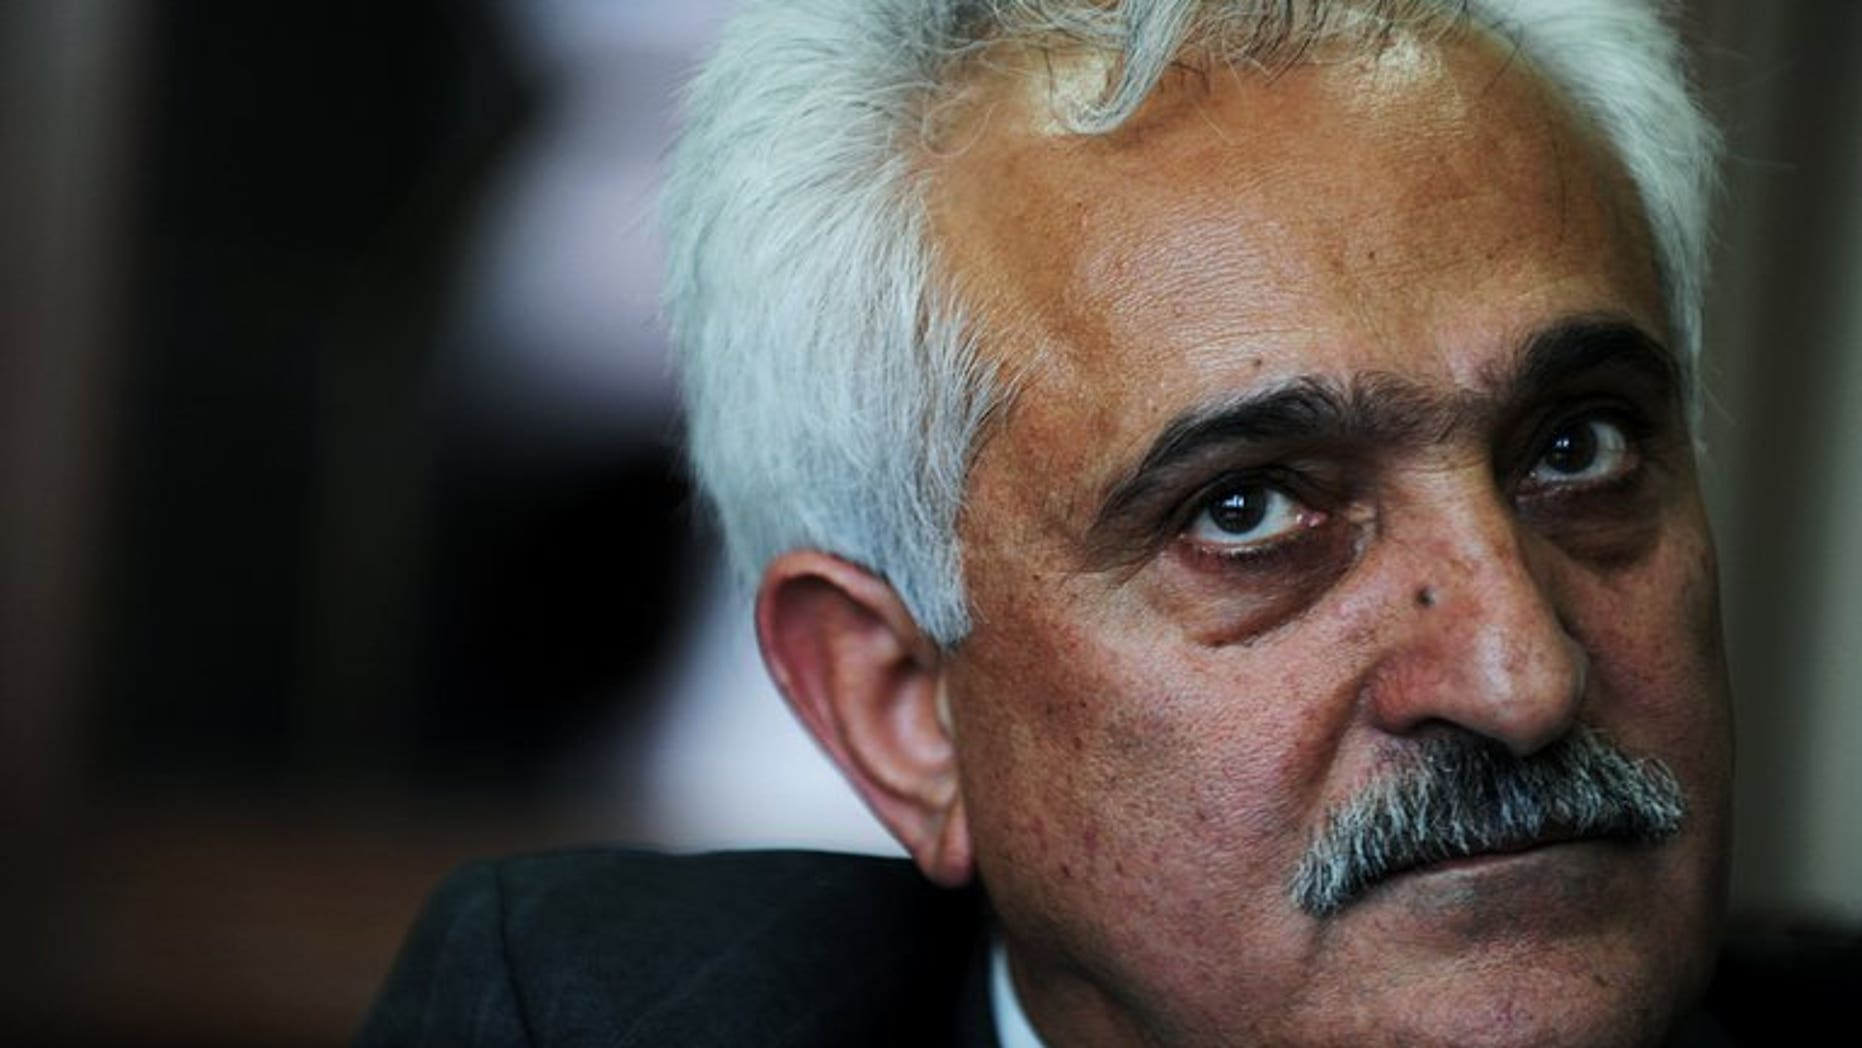 Afghan national security adviser Rangin Dadfa Spanta gives an interview to AFP in Kabul on July 5, 2010. Gunmen on Wednesday assassinated Spanta's brother outside a public bathhouse in the family's relatively peaceful home province, police said.